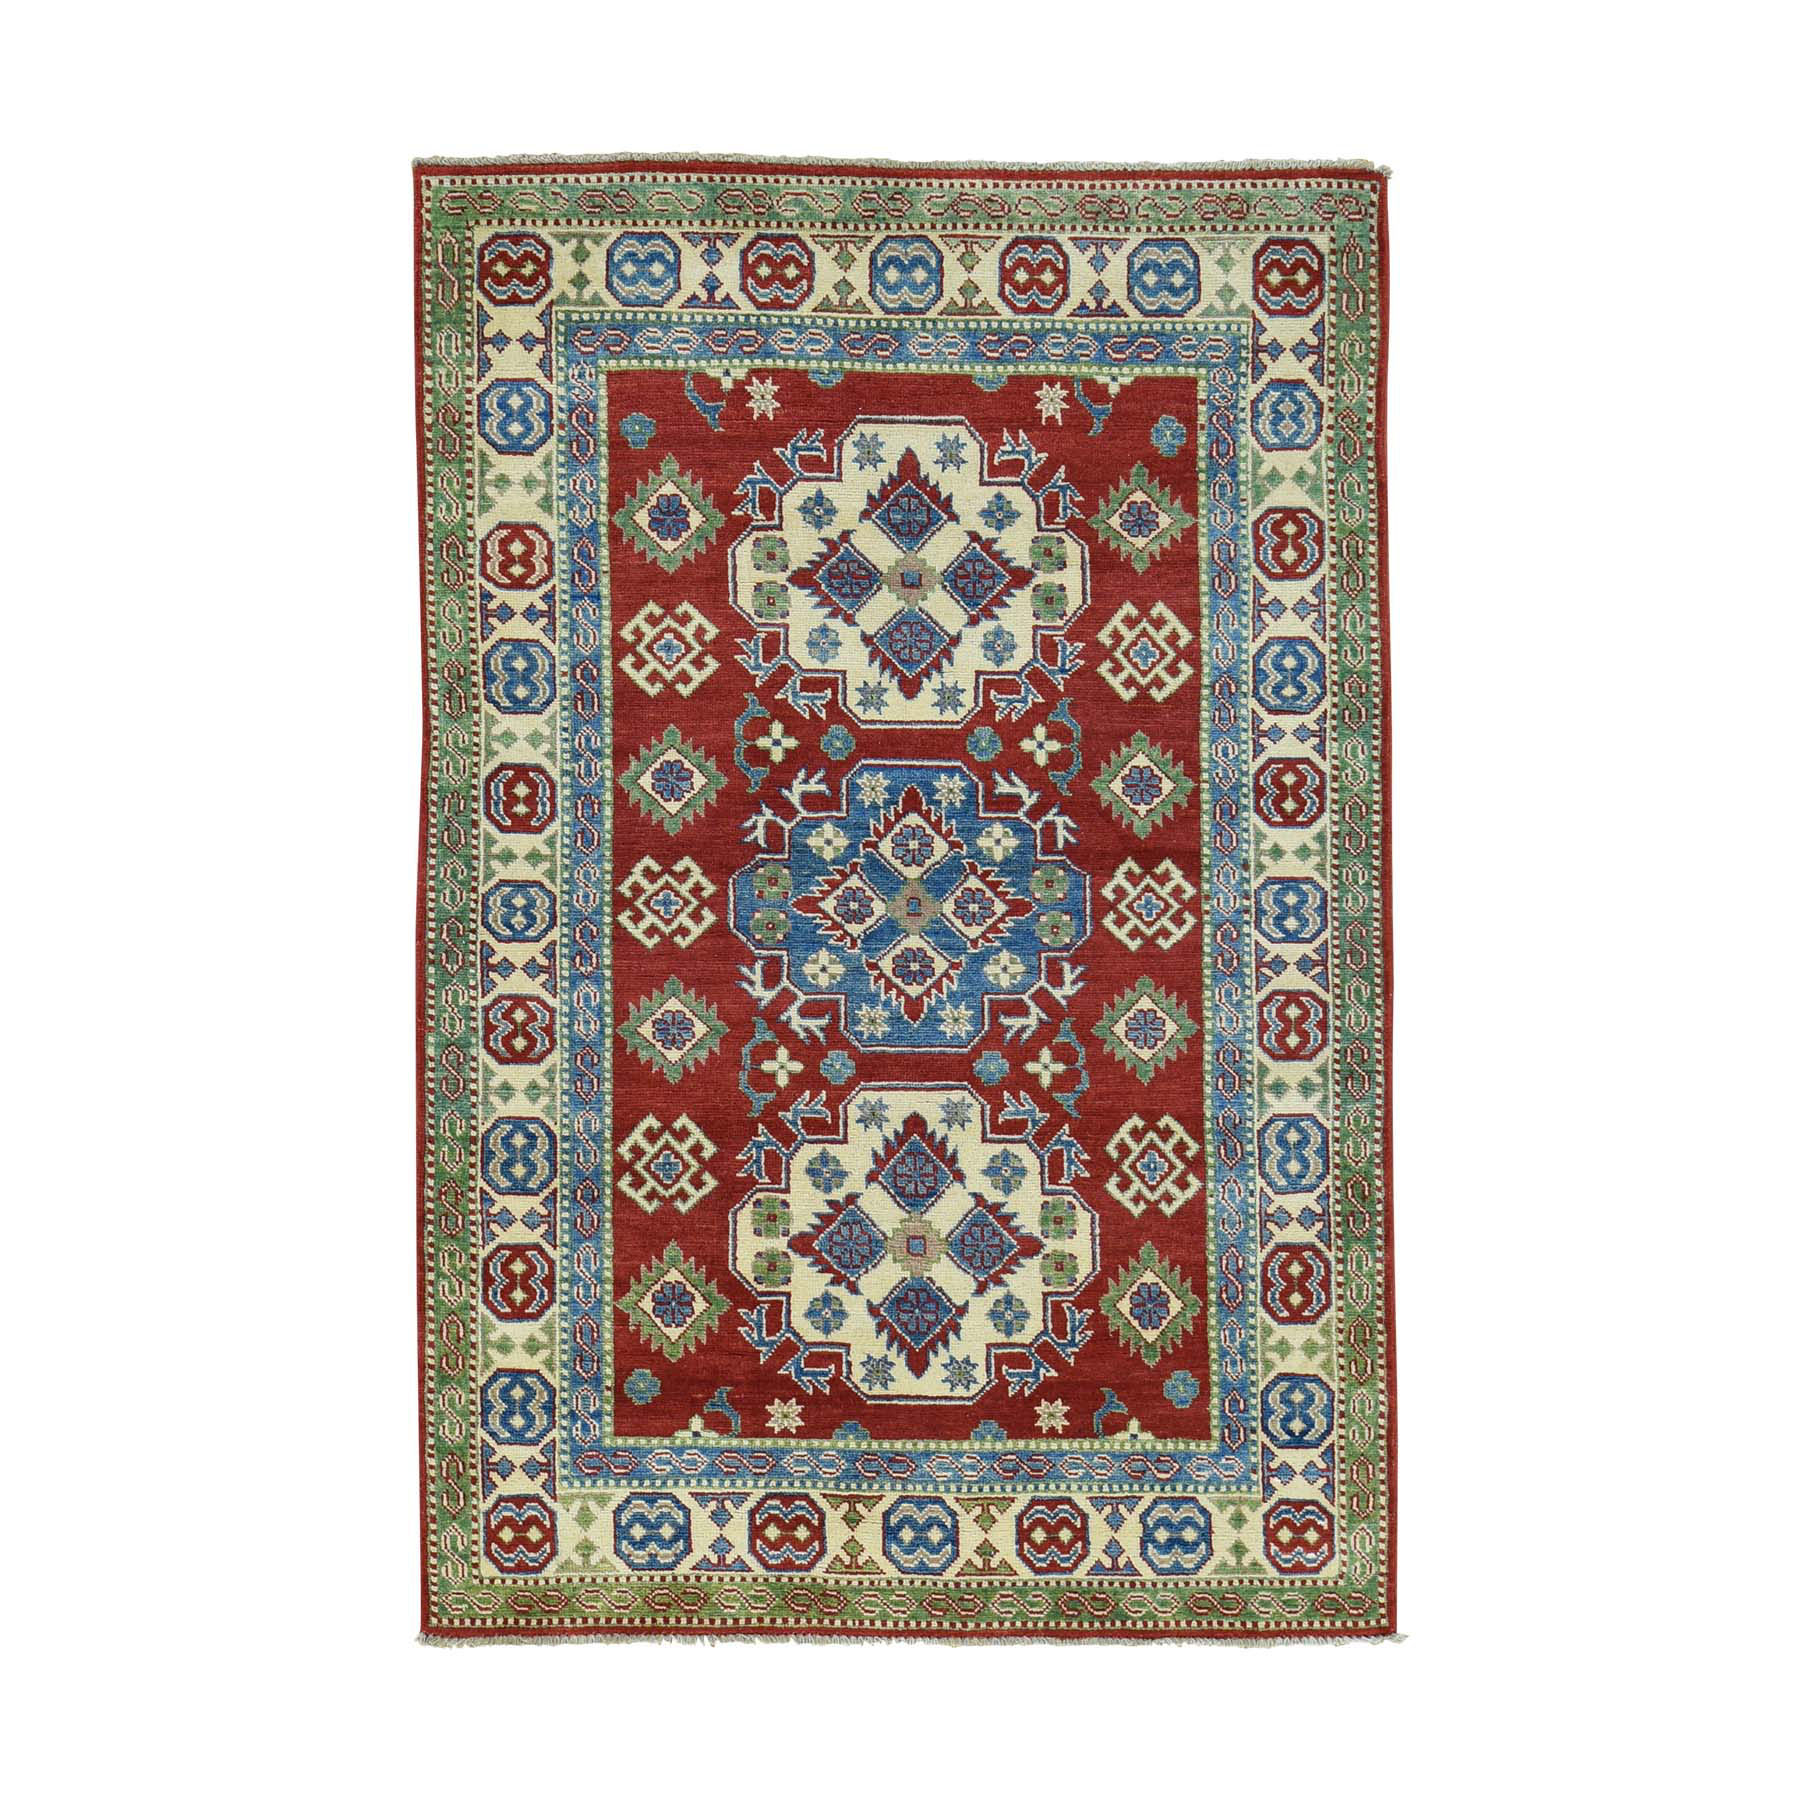 4'X6' Hand-Knotted Kazak Tribal And Geometric Design Oriental Rug moacab76